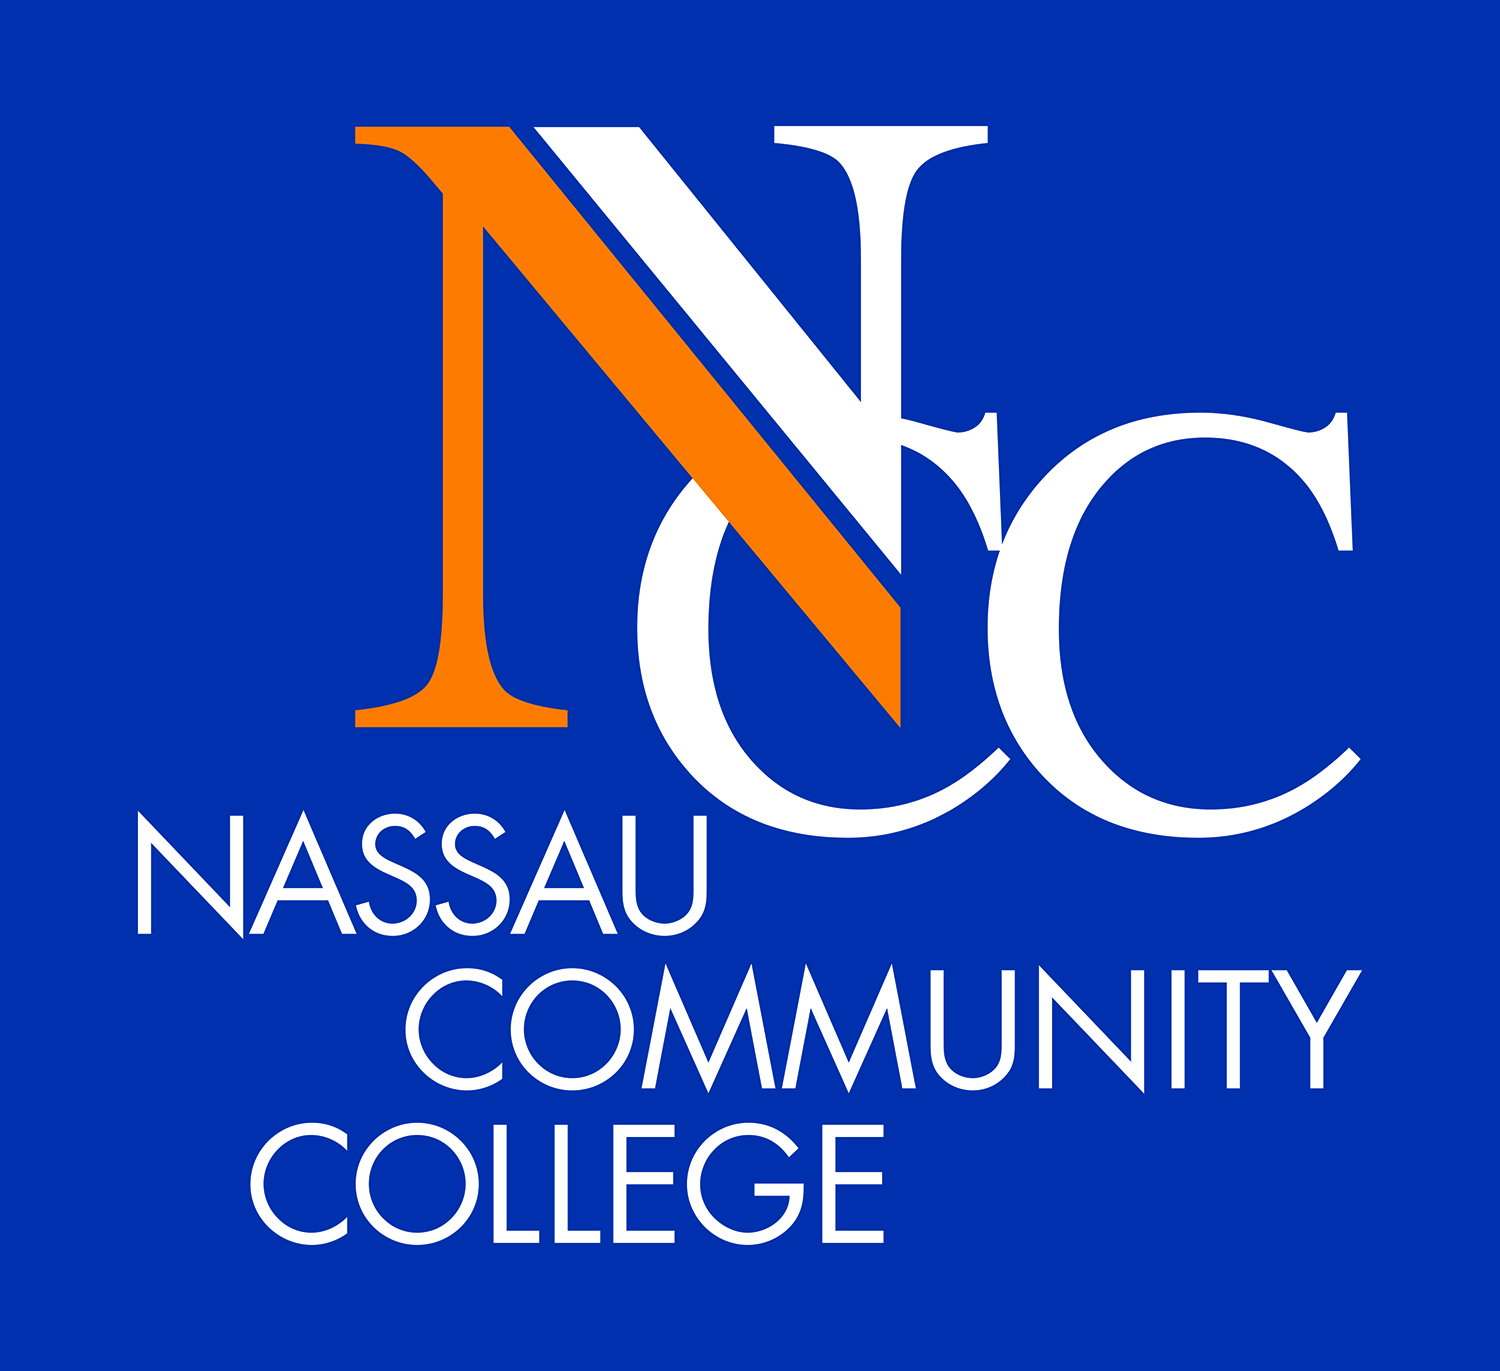 Downloadable Ncc Logos With Regard To Nassau Community College Academic Calendar